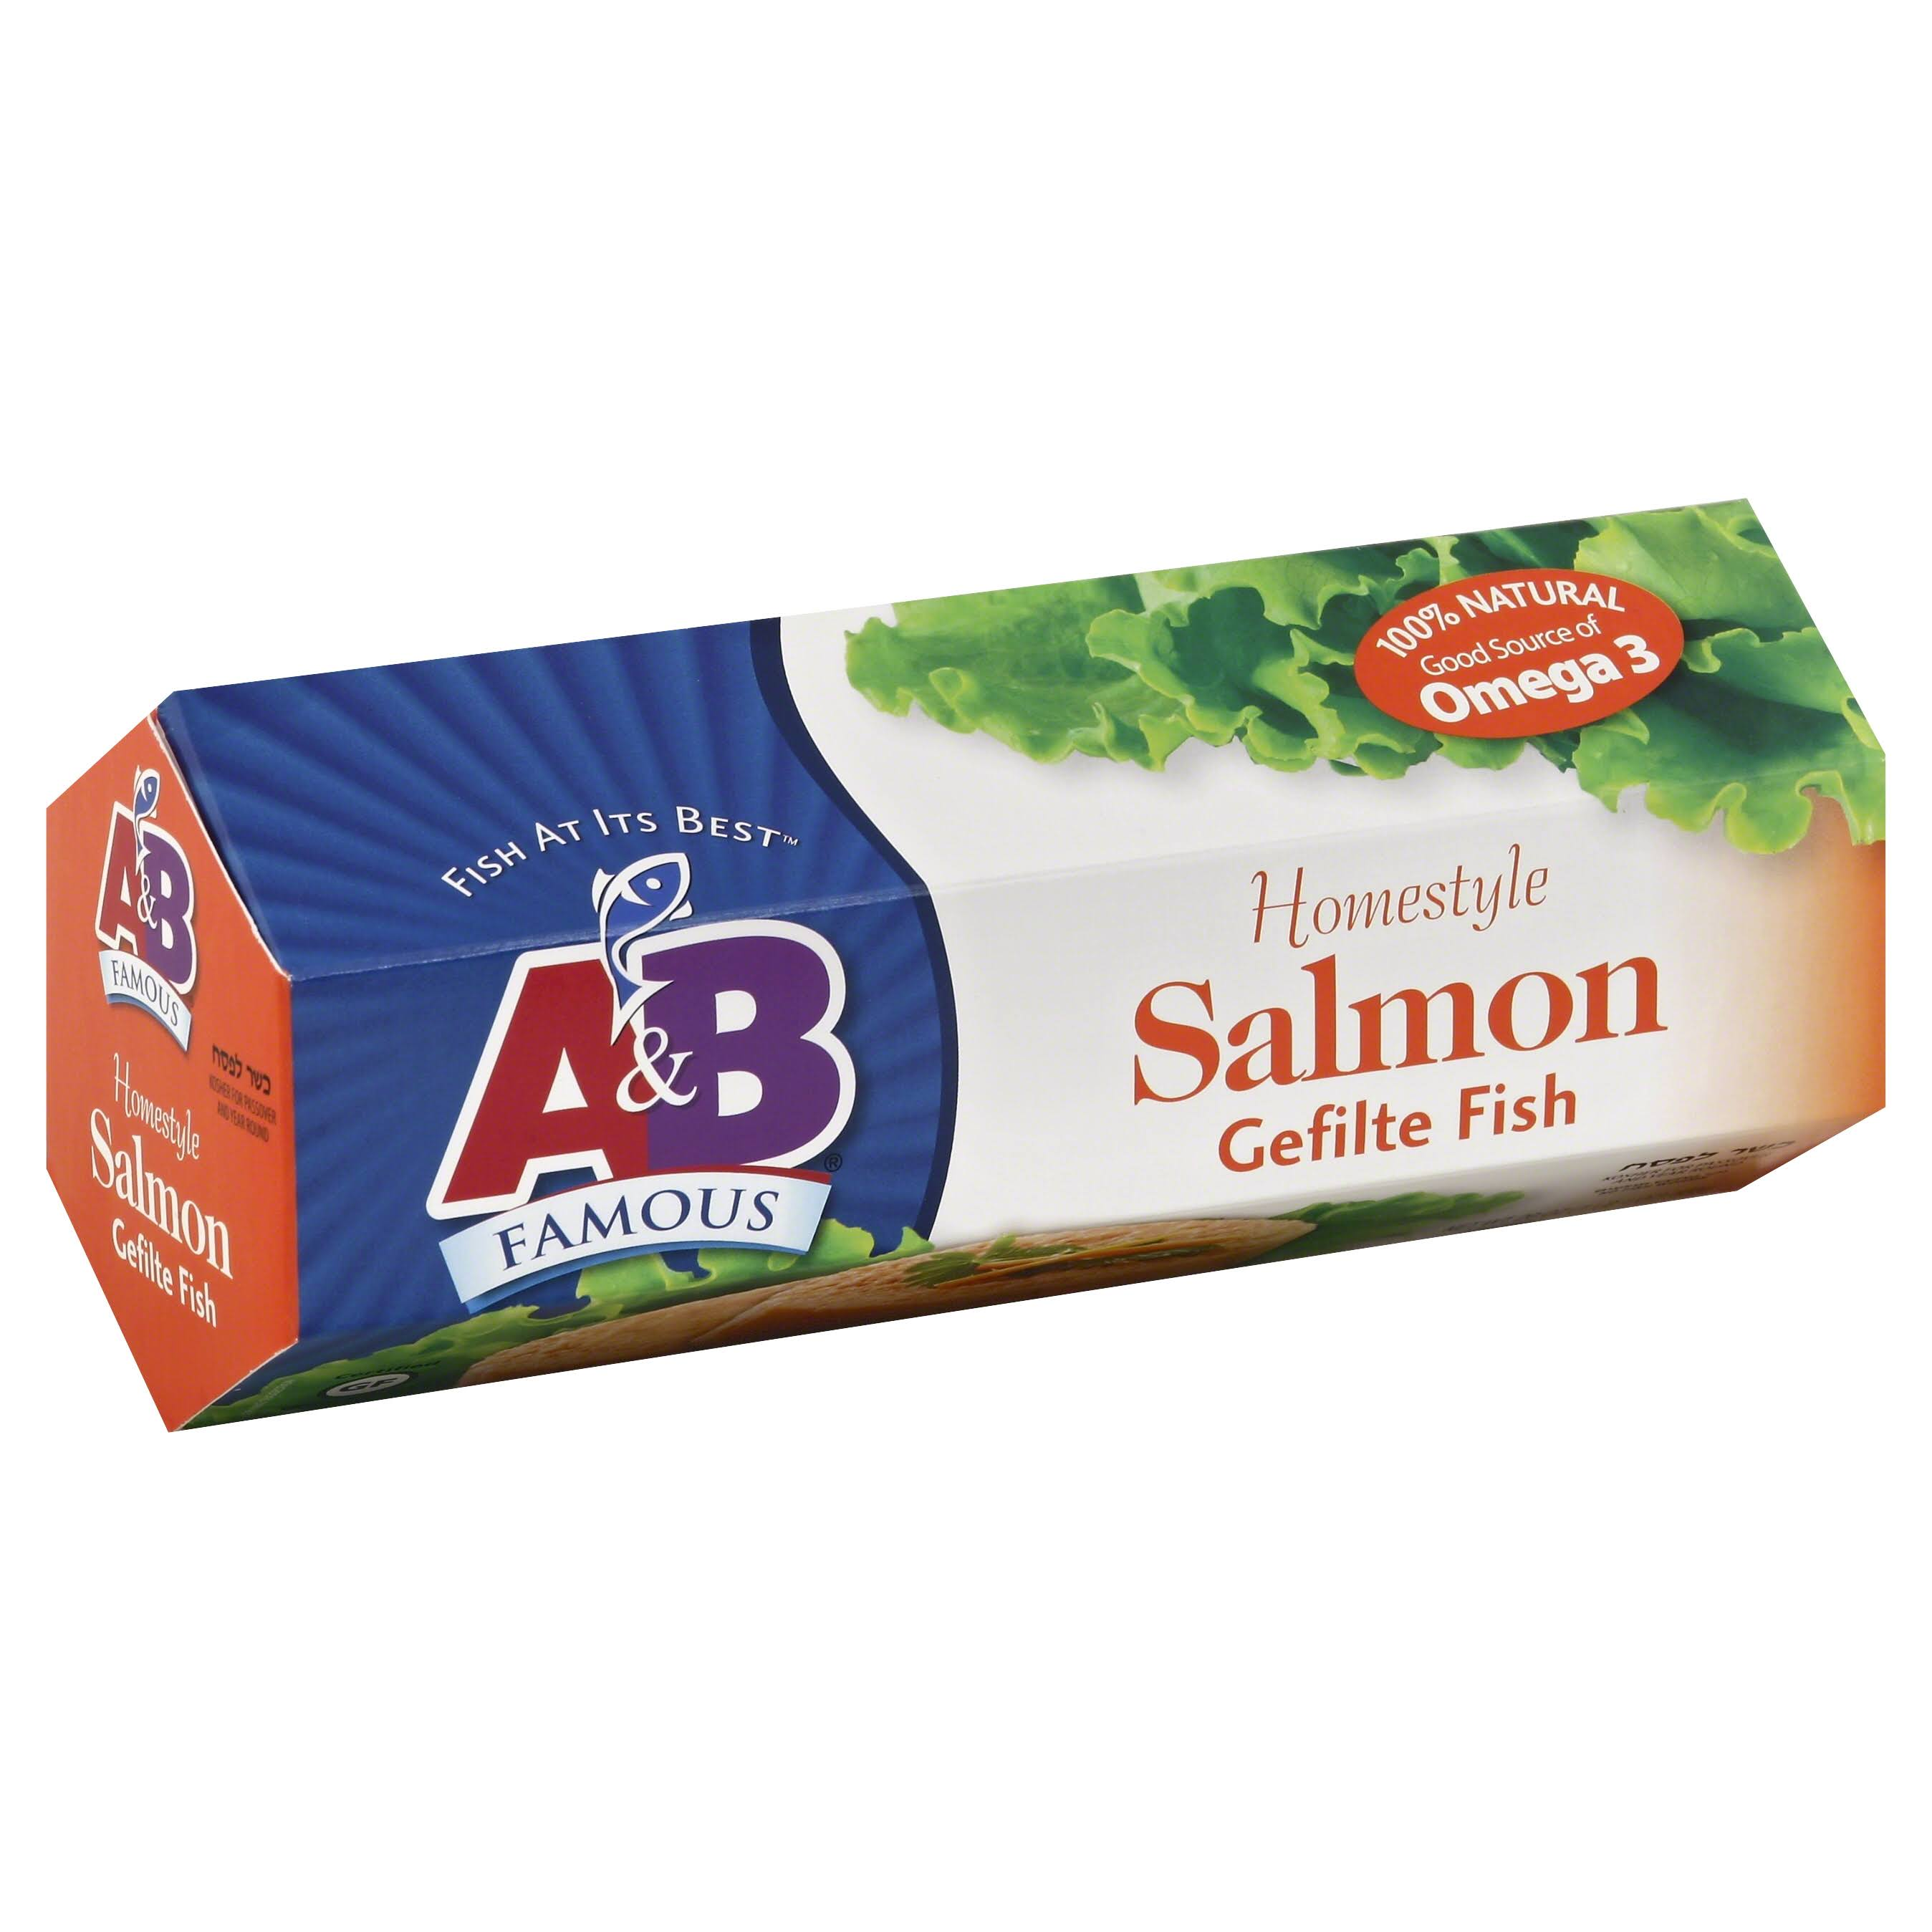 A & B Famous Gefilte Fish, Homestyle Salmon - 20 oz